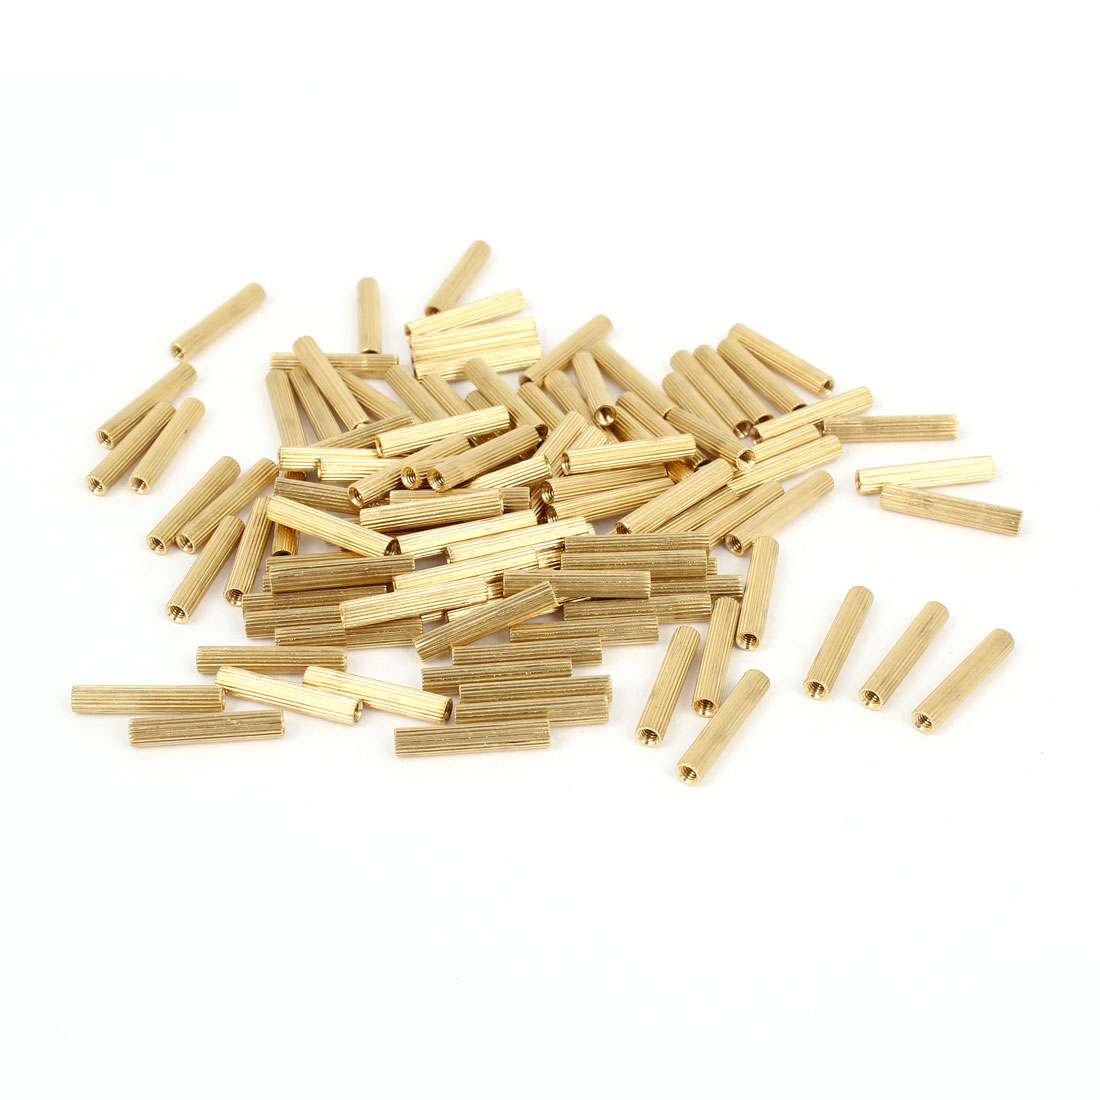 100 Pcs Female Threaded Pillars Brass Standoff Spacer Gold Tone M2x17mm